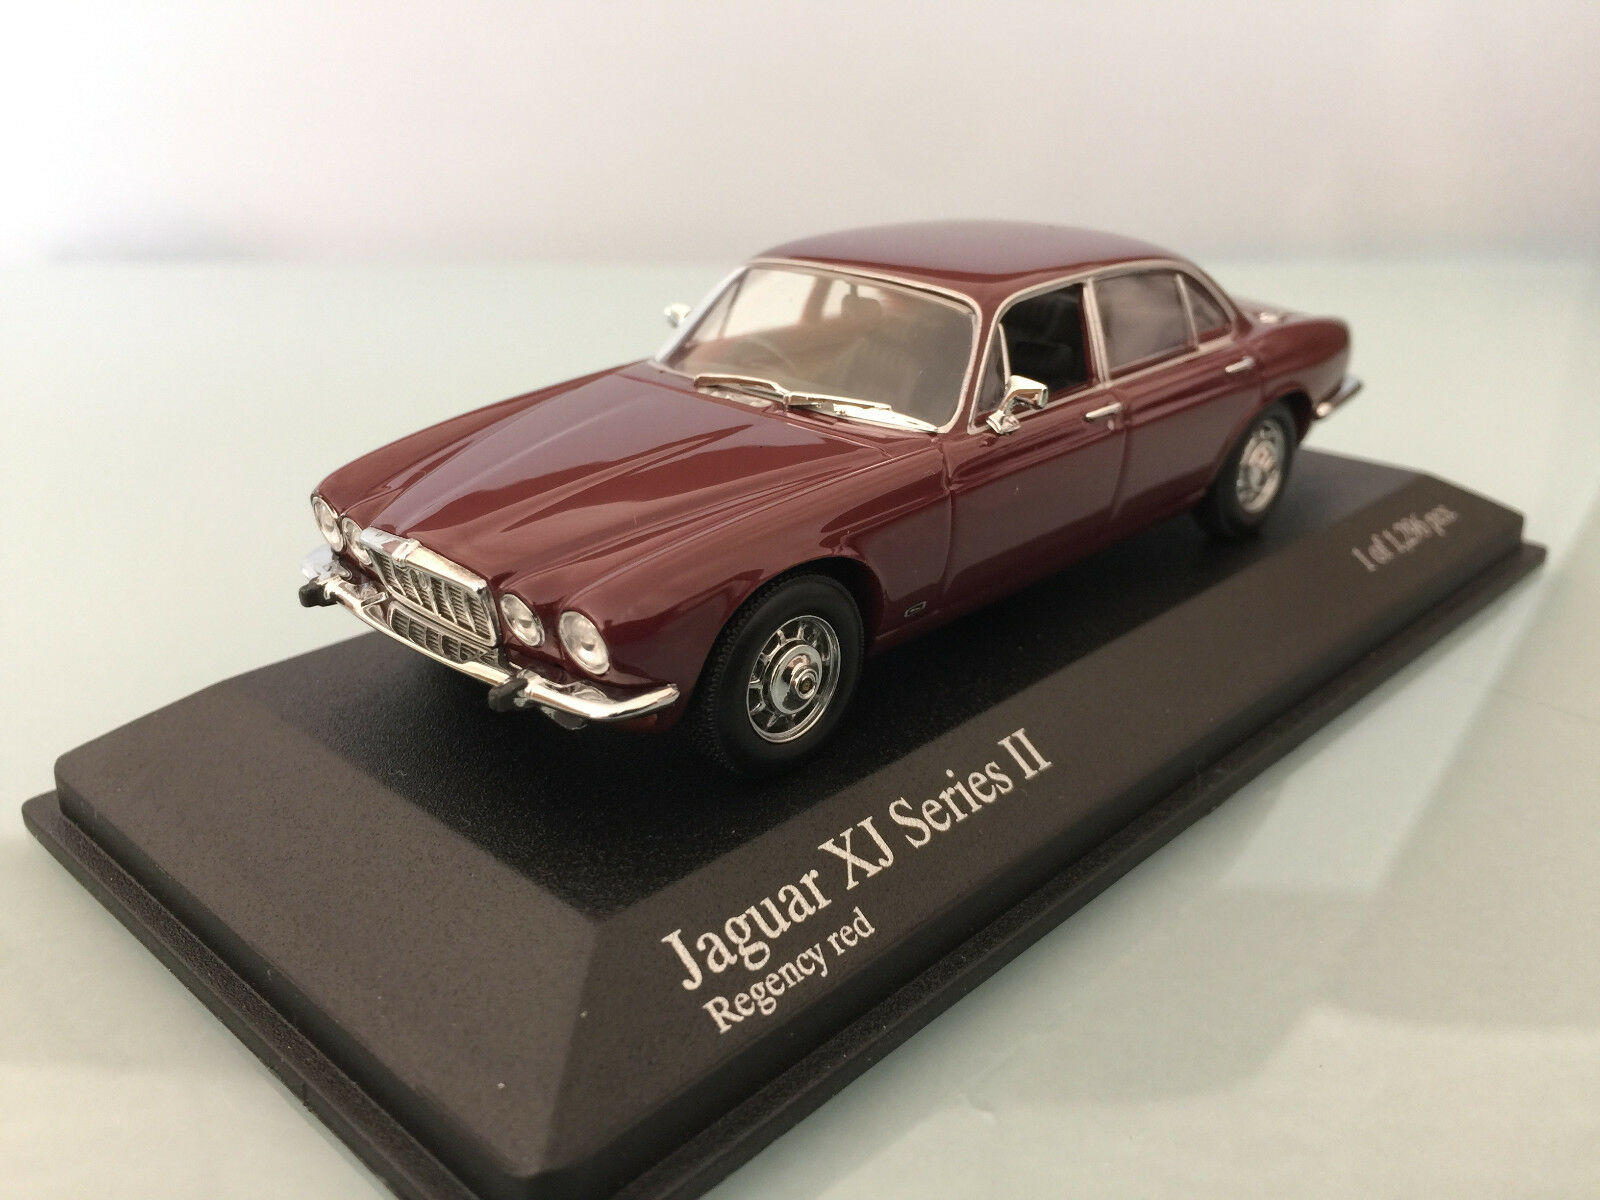 1 43 Minichamps Jaguar XJ Series II, 1975, Regency rouge